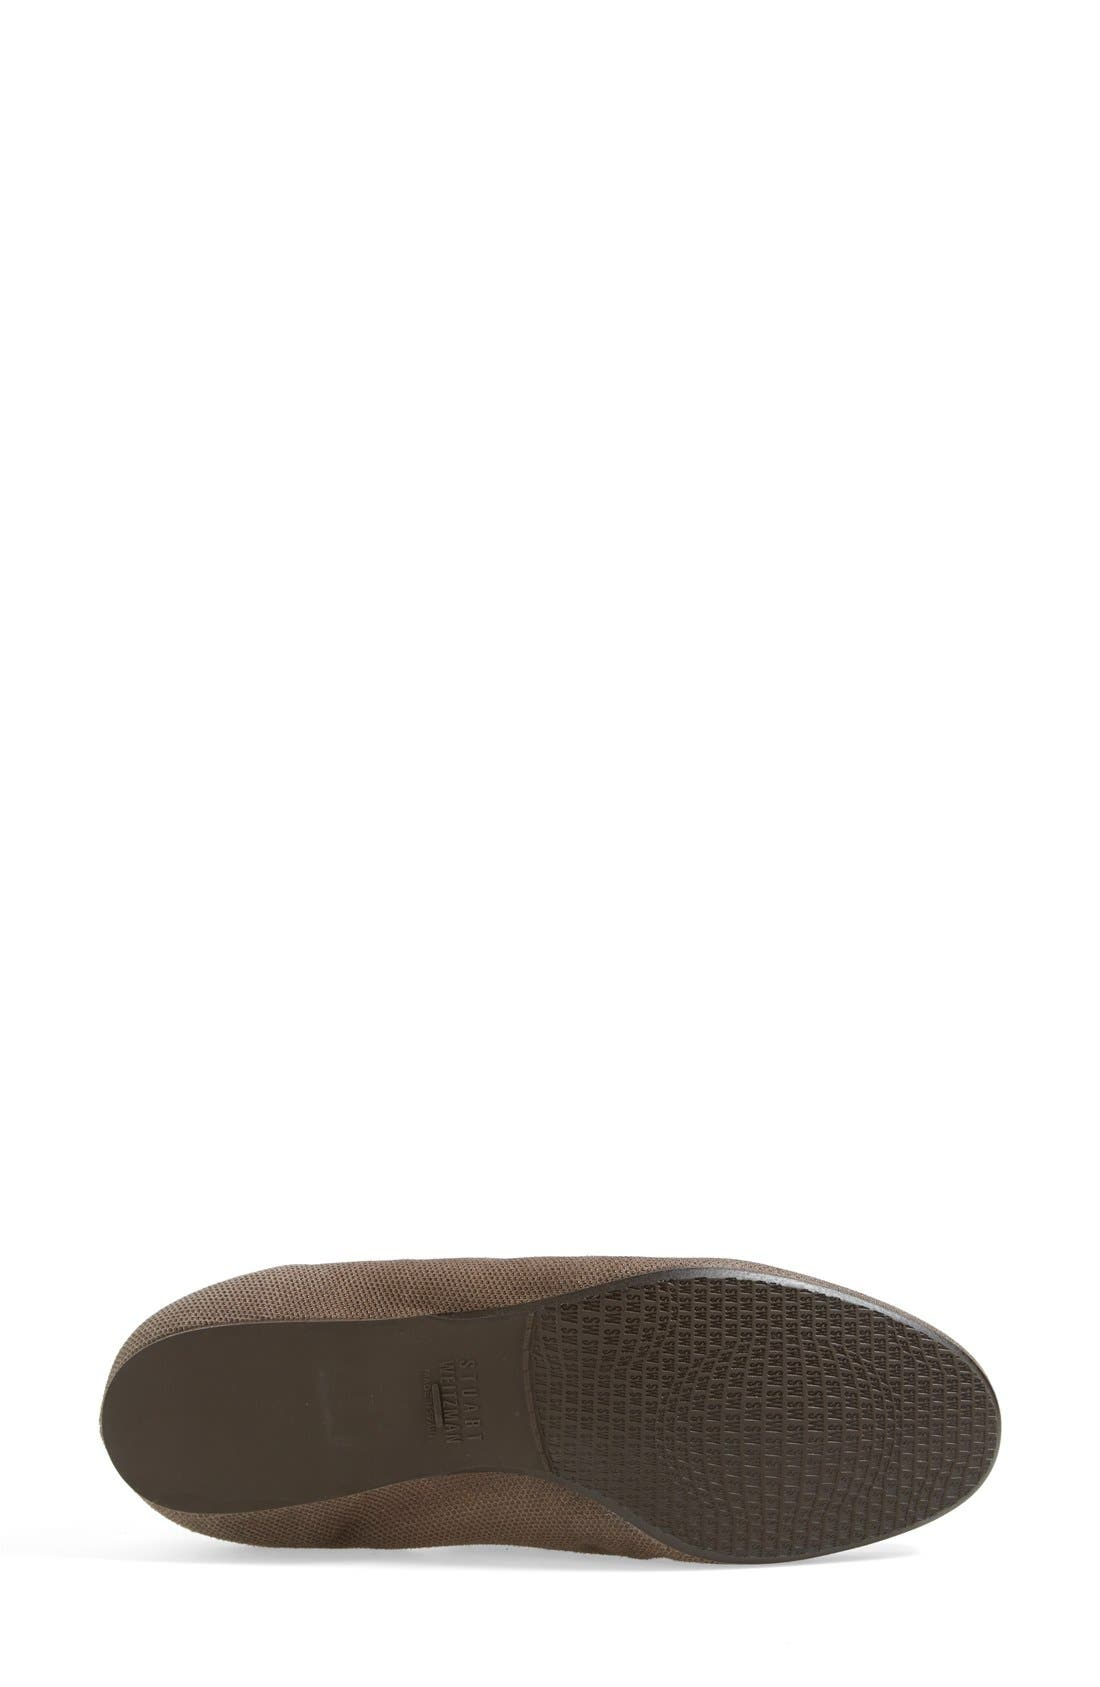 Alternate Image 4  - Stuart Weitzman 'Slipin' Flat (Nordstrom Exclusive) (Women)